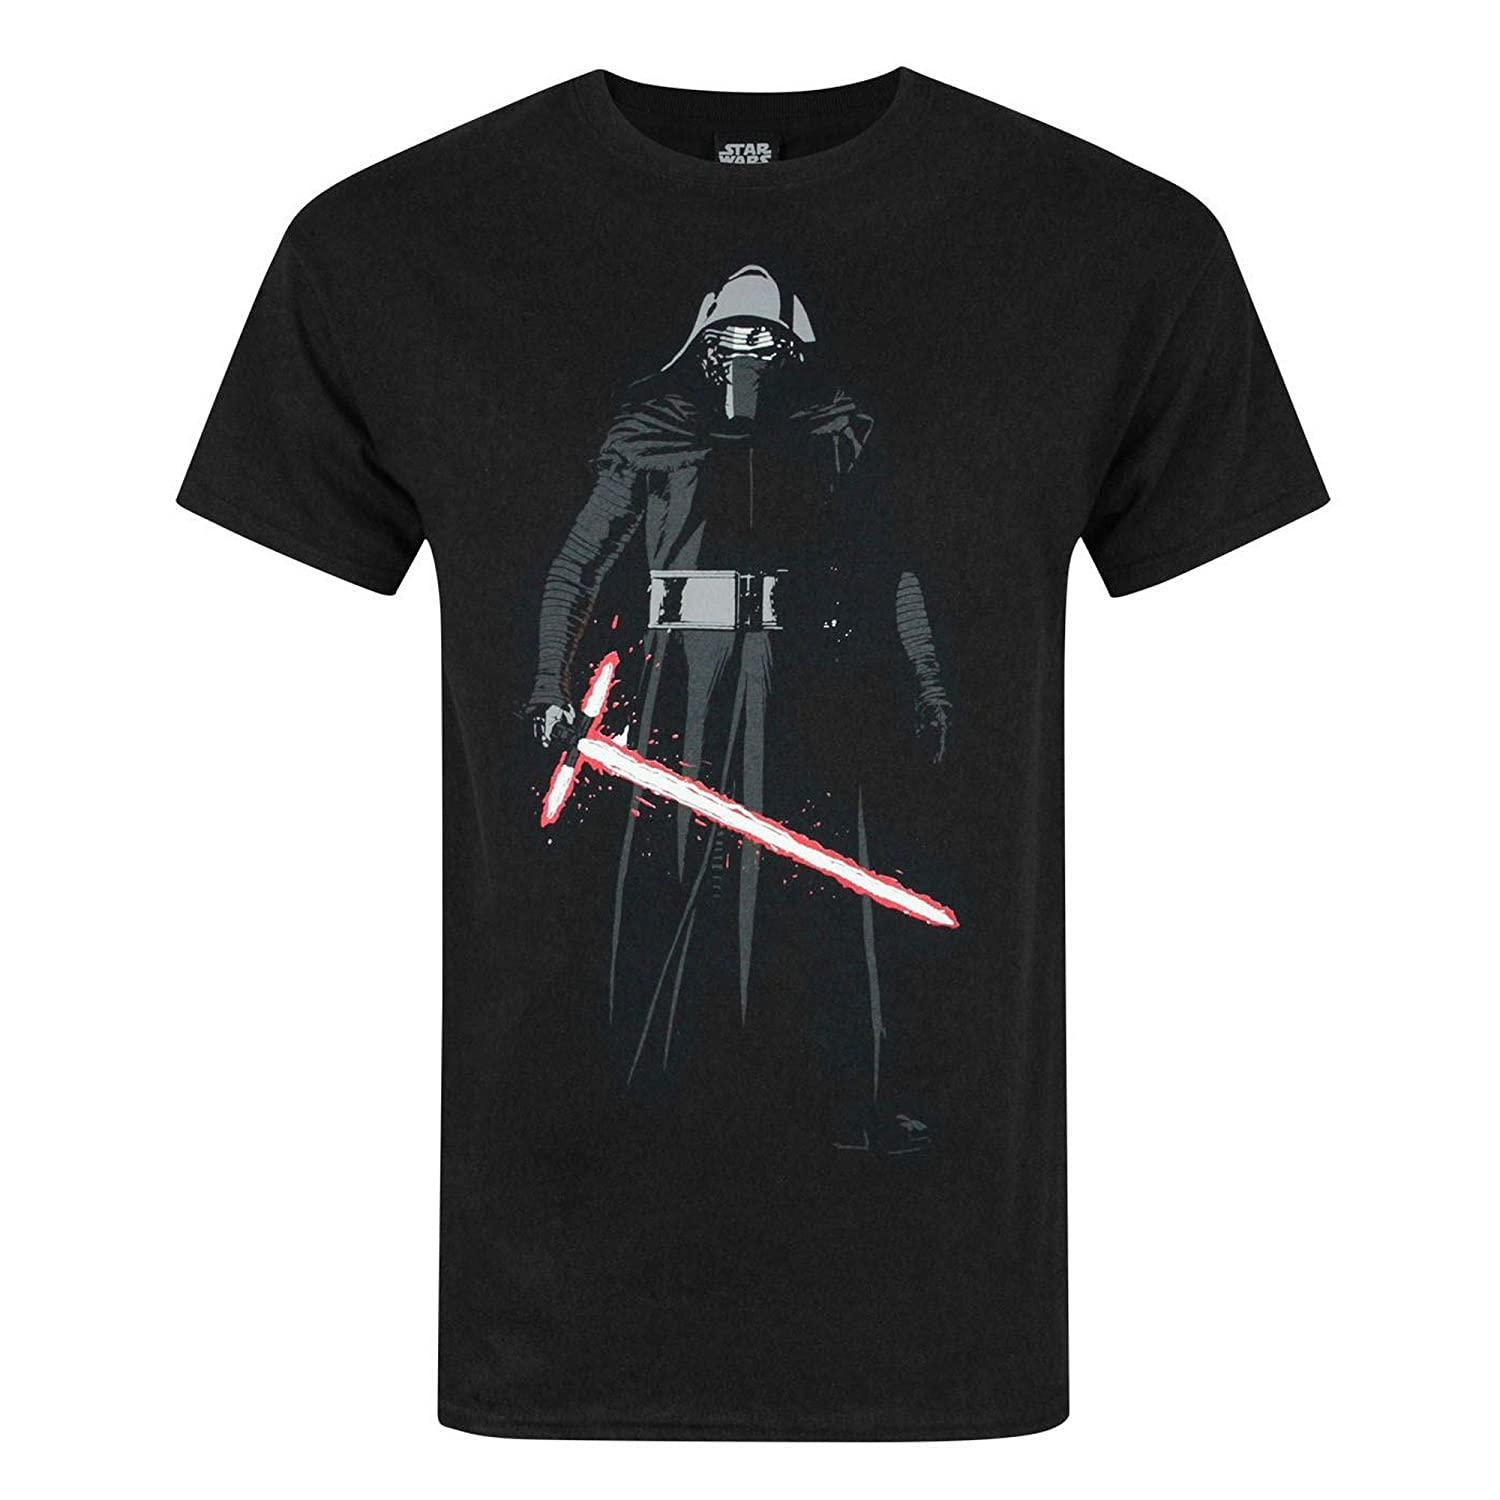 Star Wars The Force Awakens Kylo Ren Men's T-Shirt